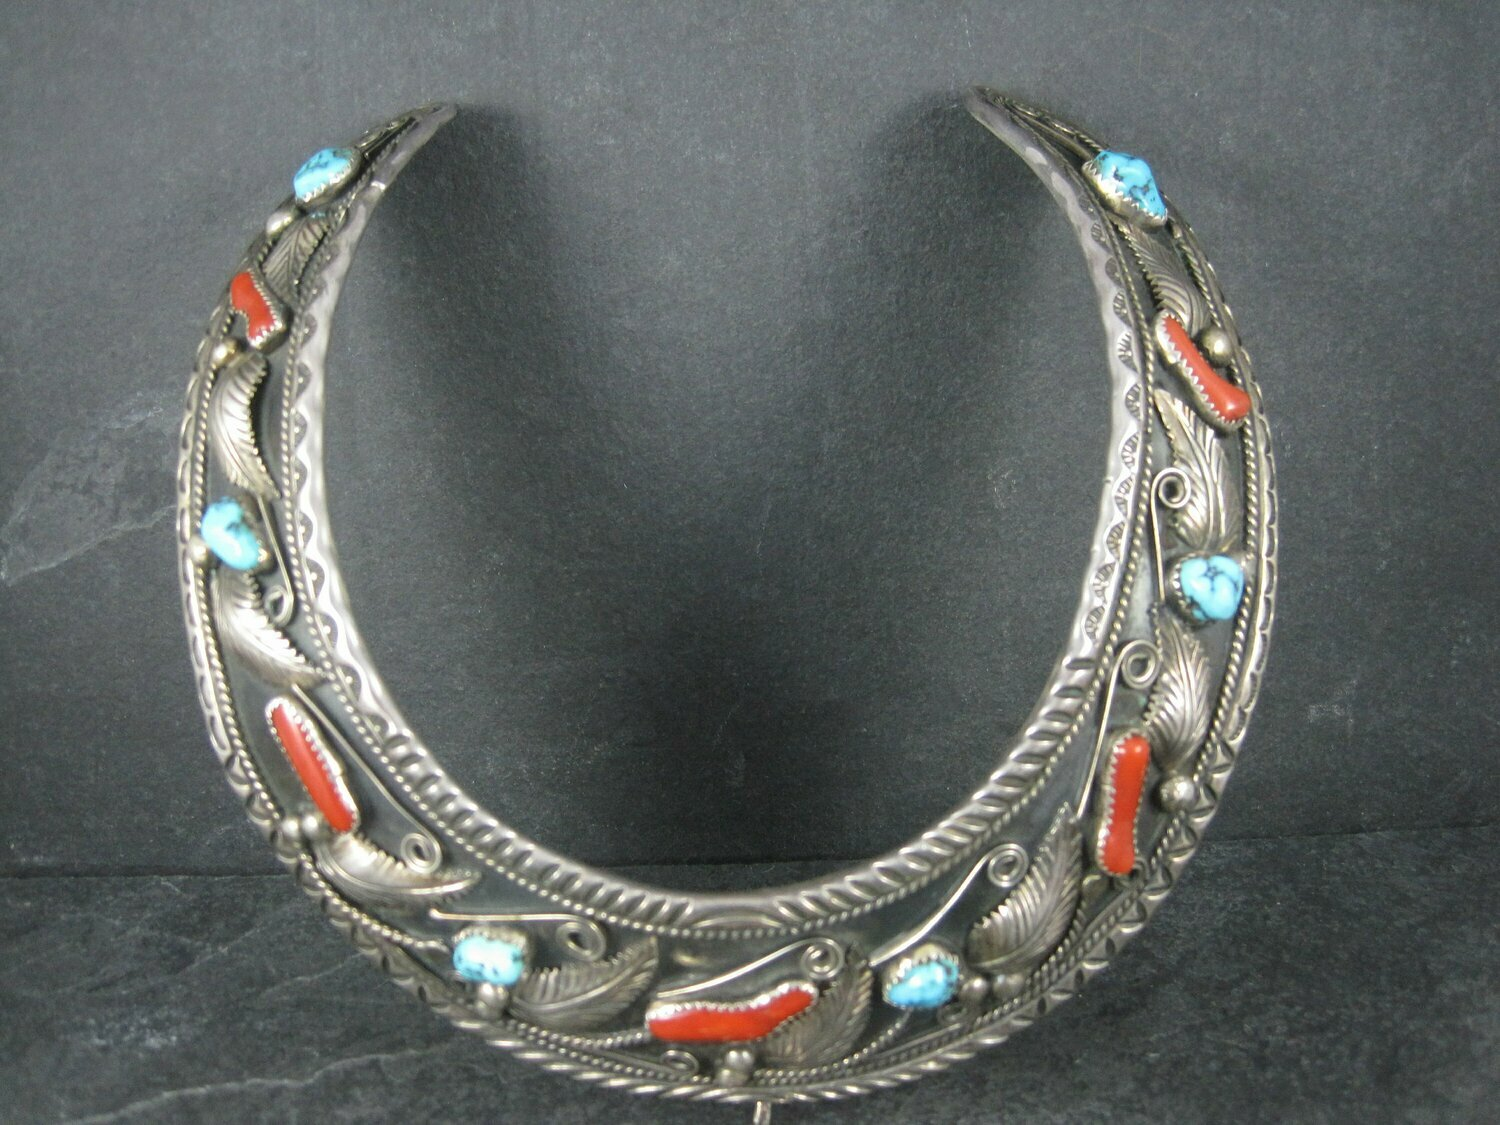 Vintage Navajo Turquoise and Coral Collar Choker Necklace